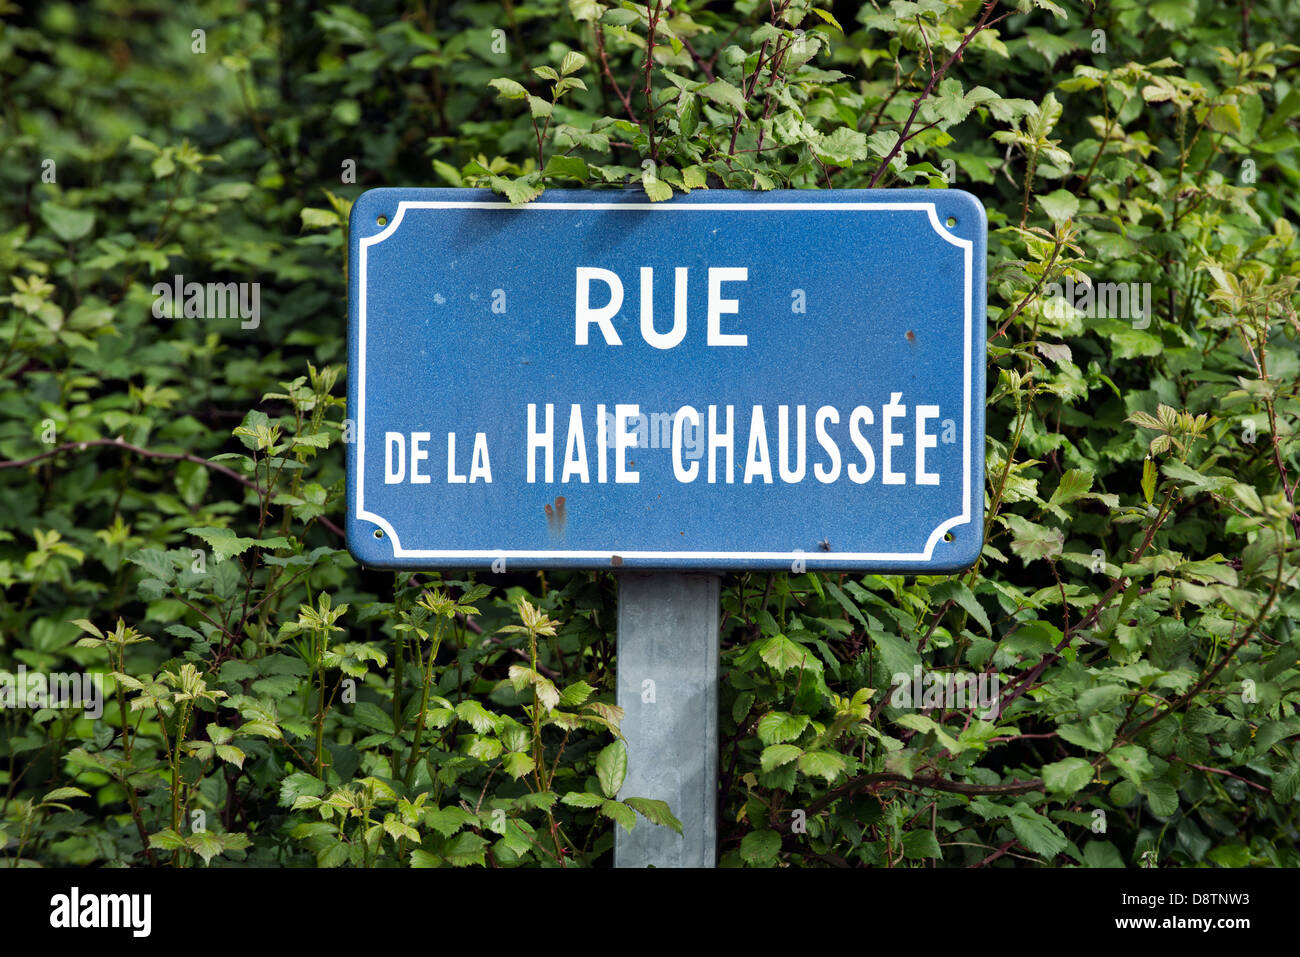 A traditional French street name sign - Stock Image